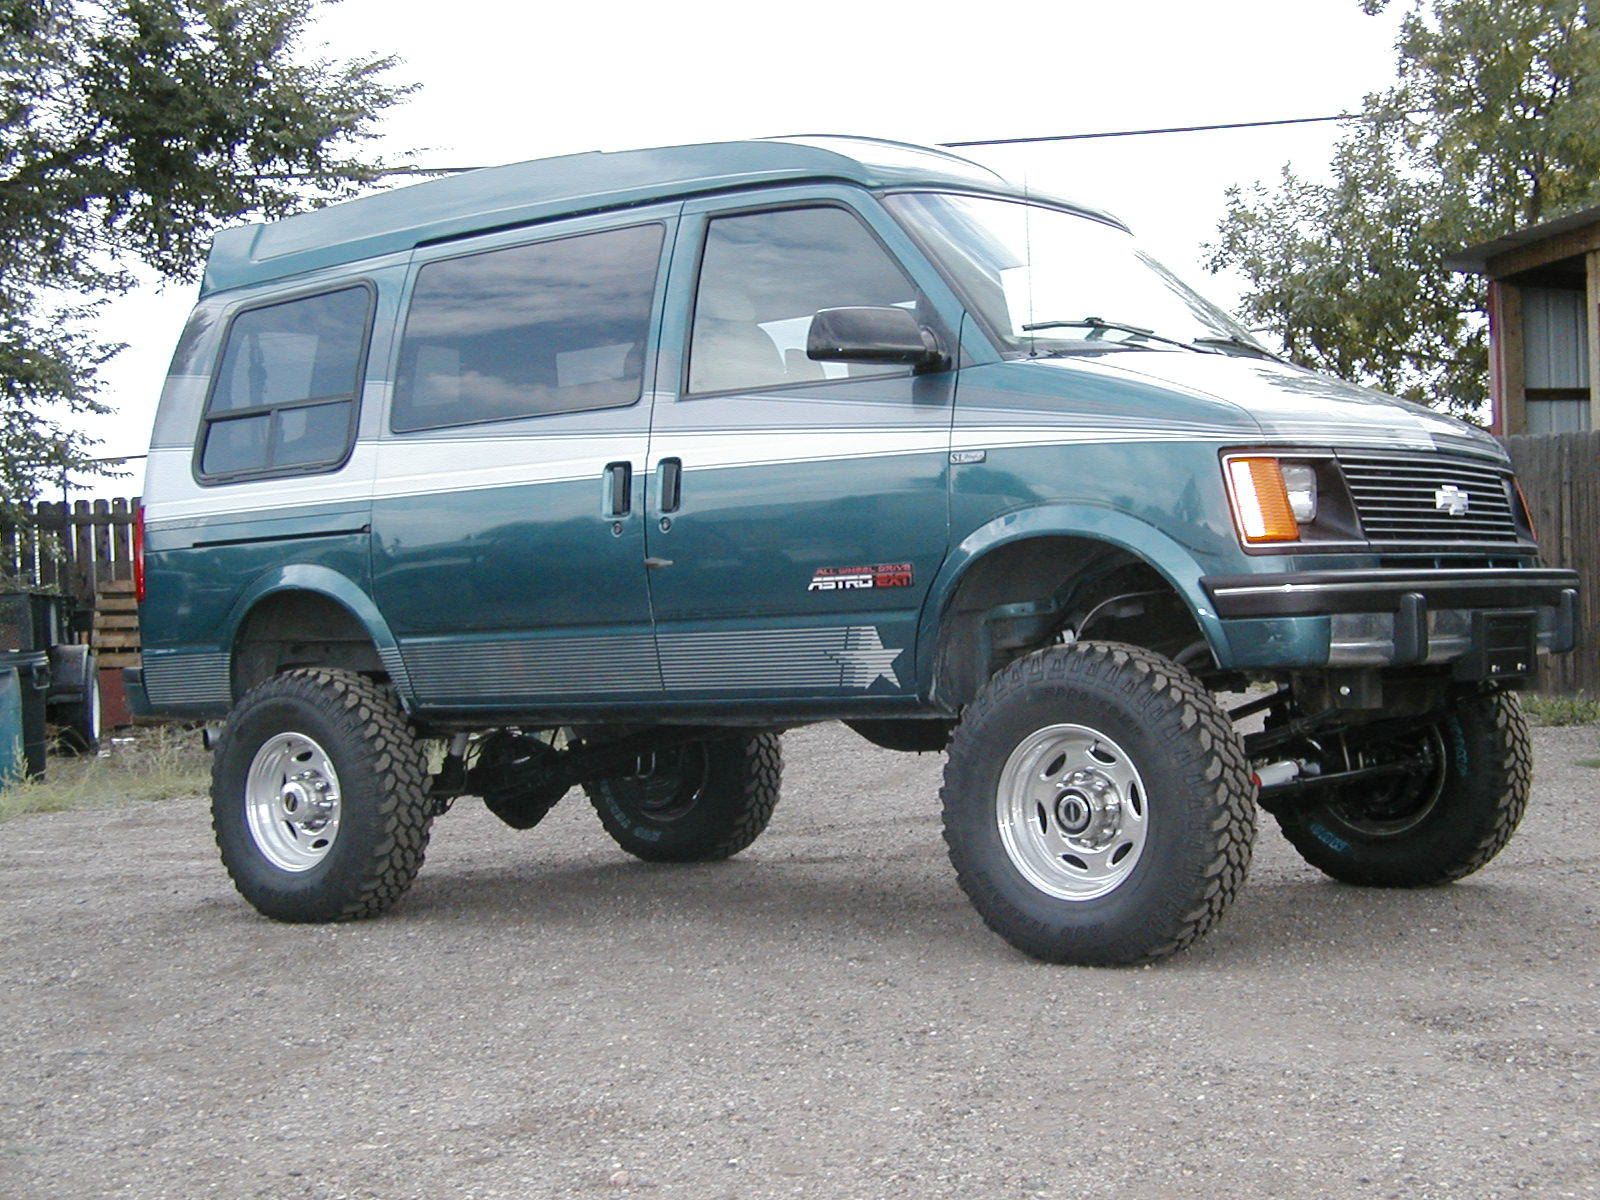 4x4 Lifted Chevy Astro Van